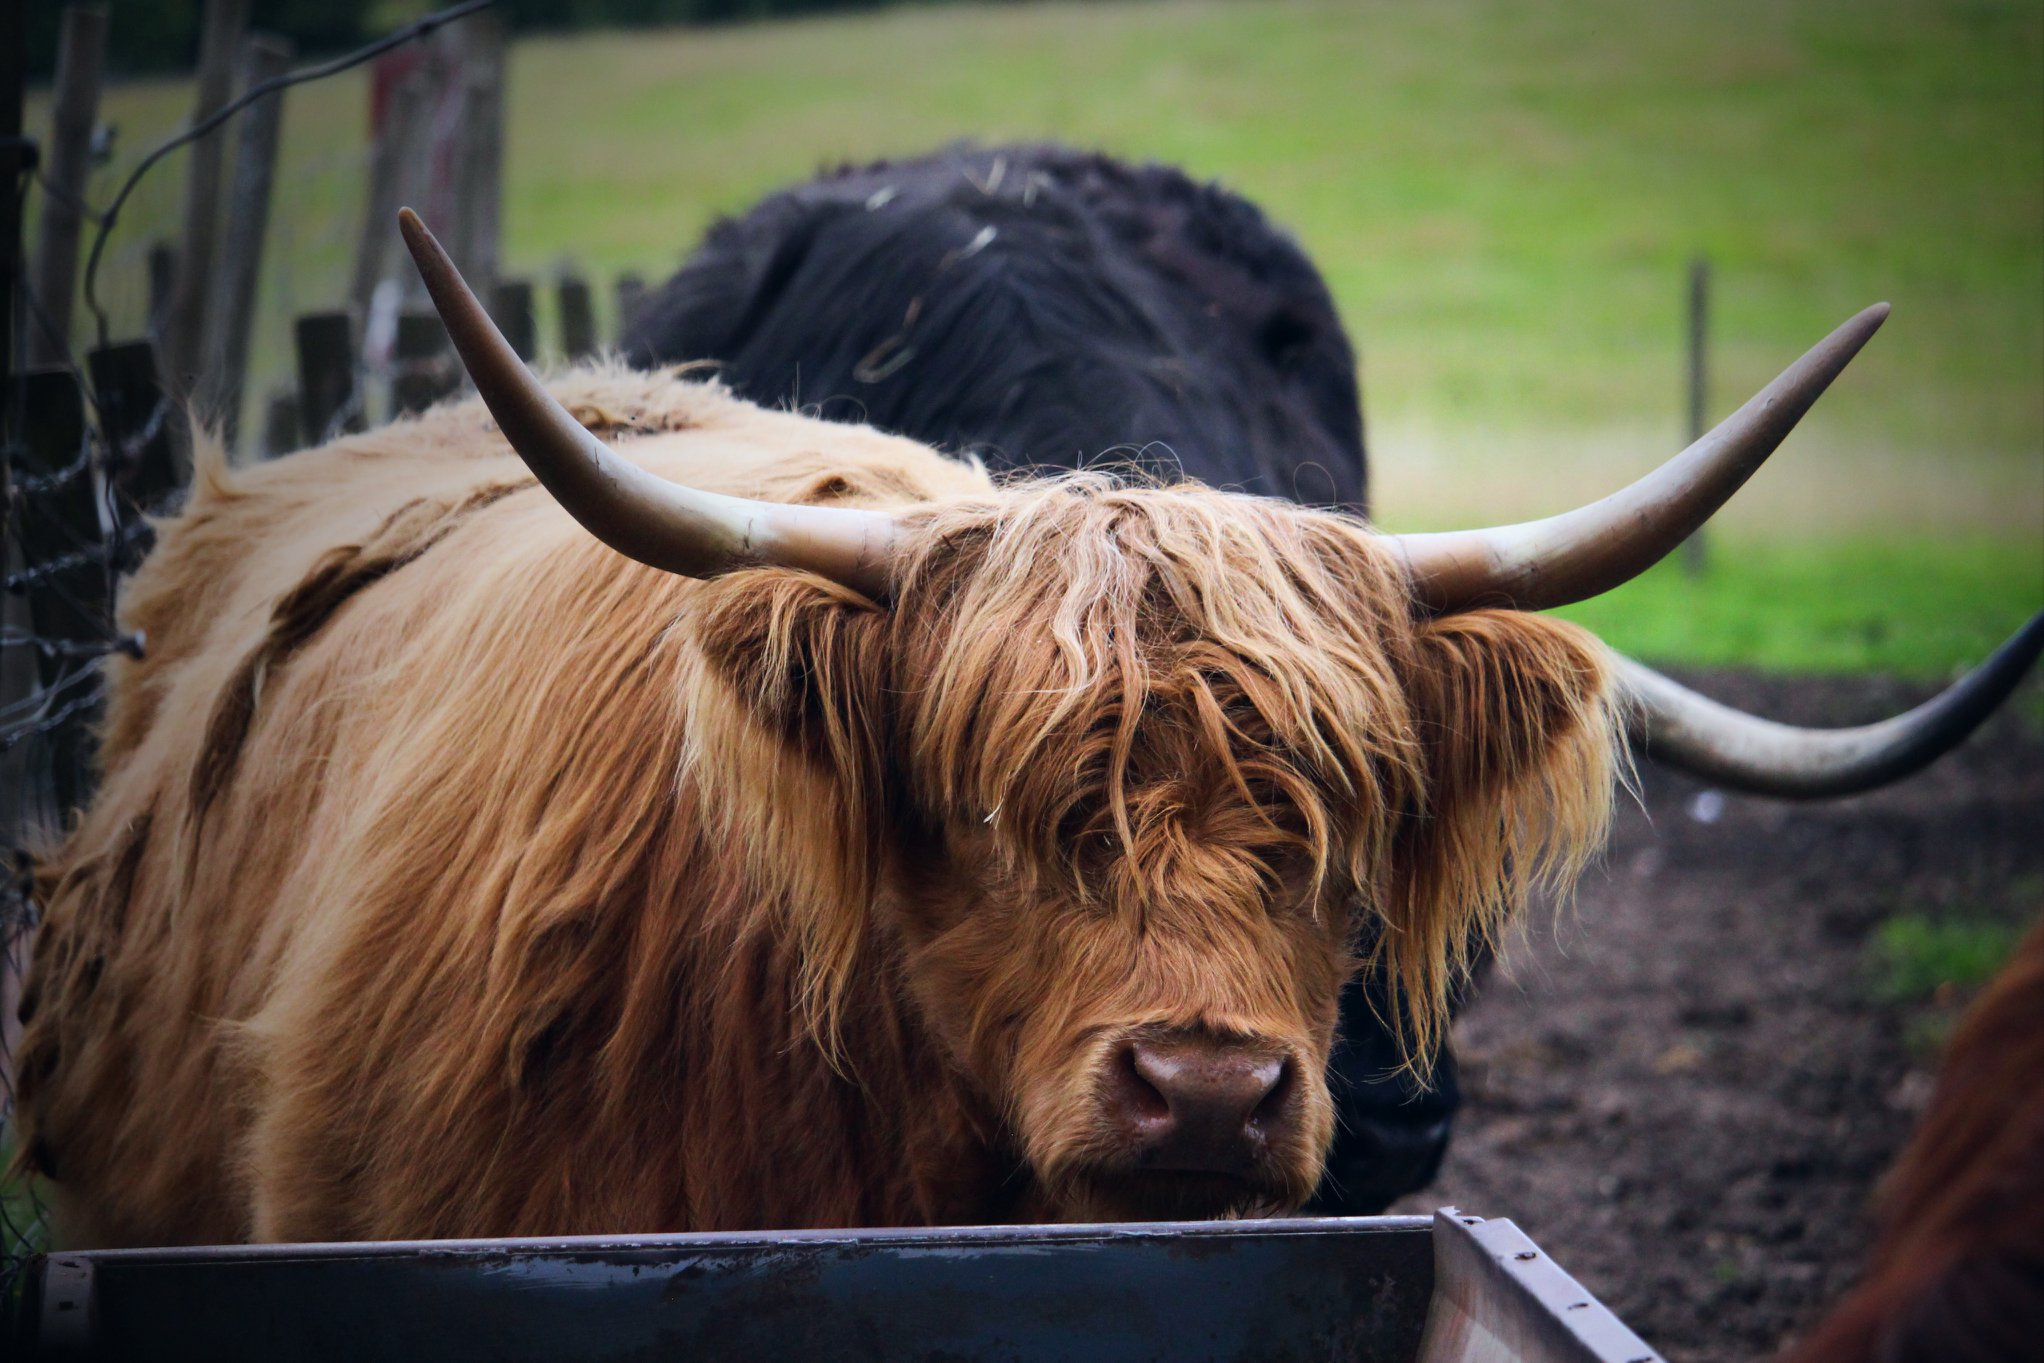 My first meeting with one of the famous coos in the Loch Lomond and Trossachs National Park.